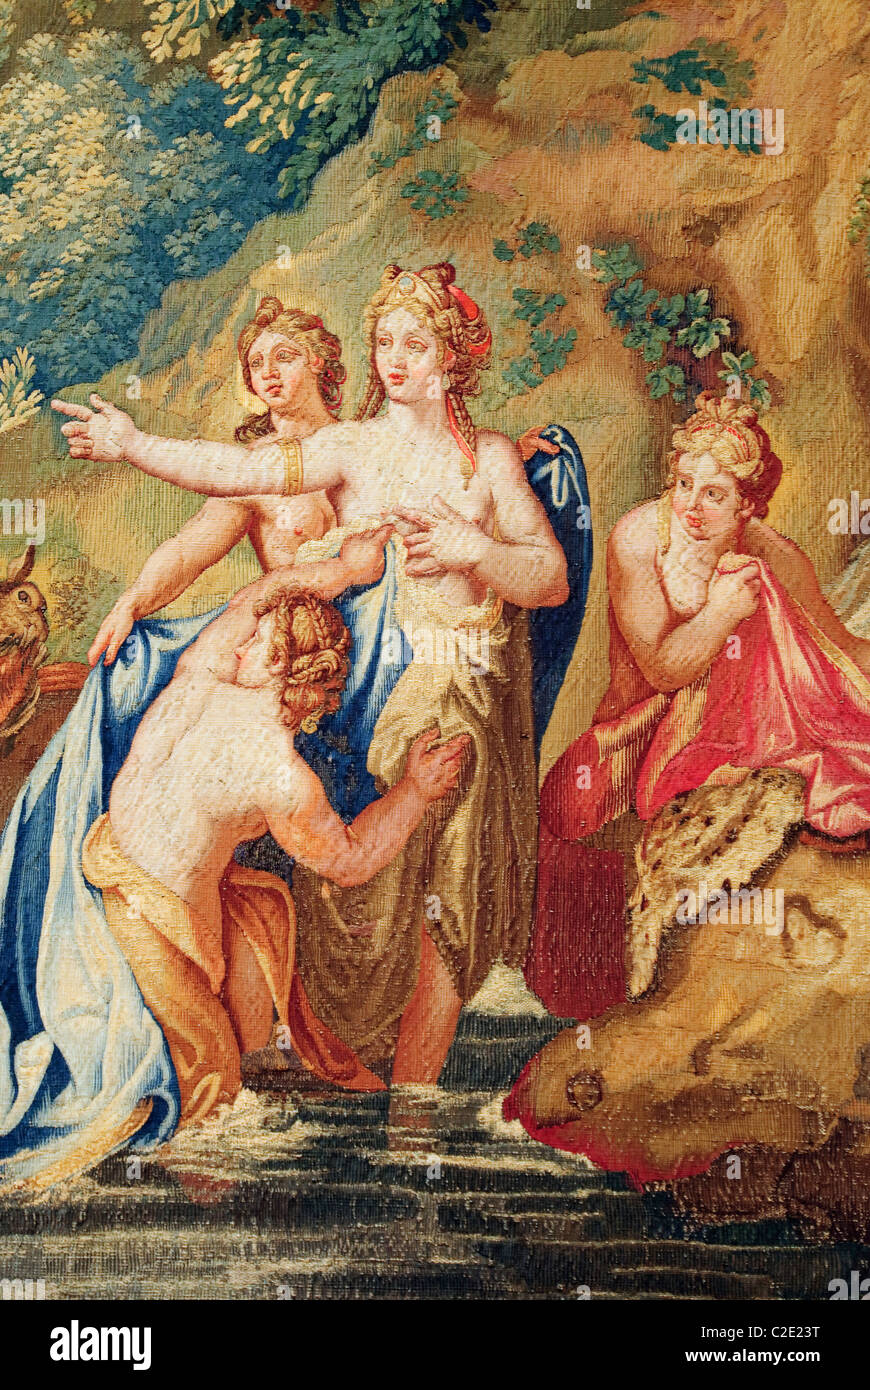 Detail: Diana and Actaeon from a set of Ovid's Metamorphoses, designed before 1680, woven late 17th–early 18th - Stock Image